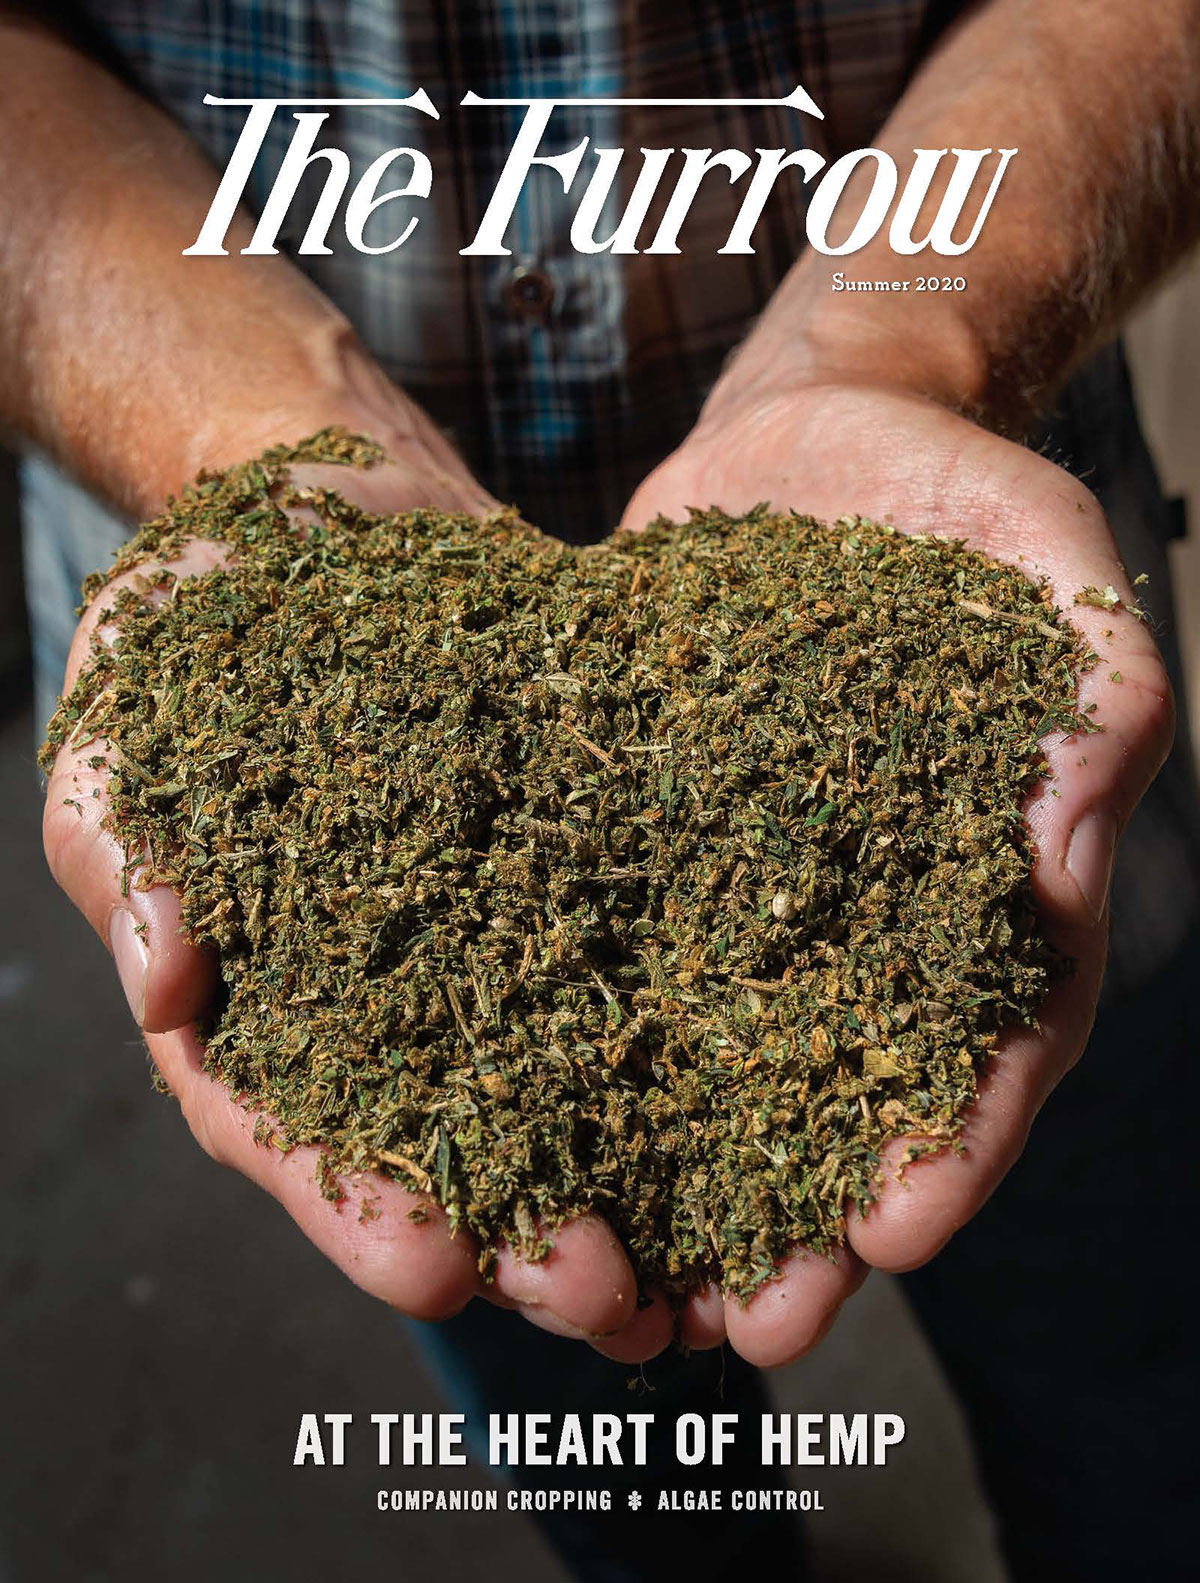 The Furrow - Summer 2020 Issue